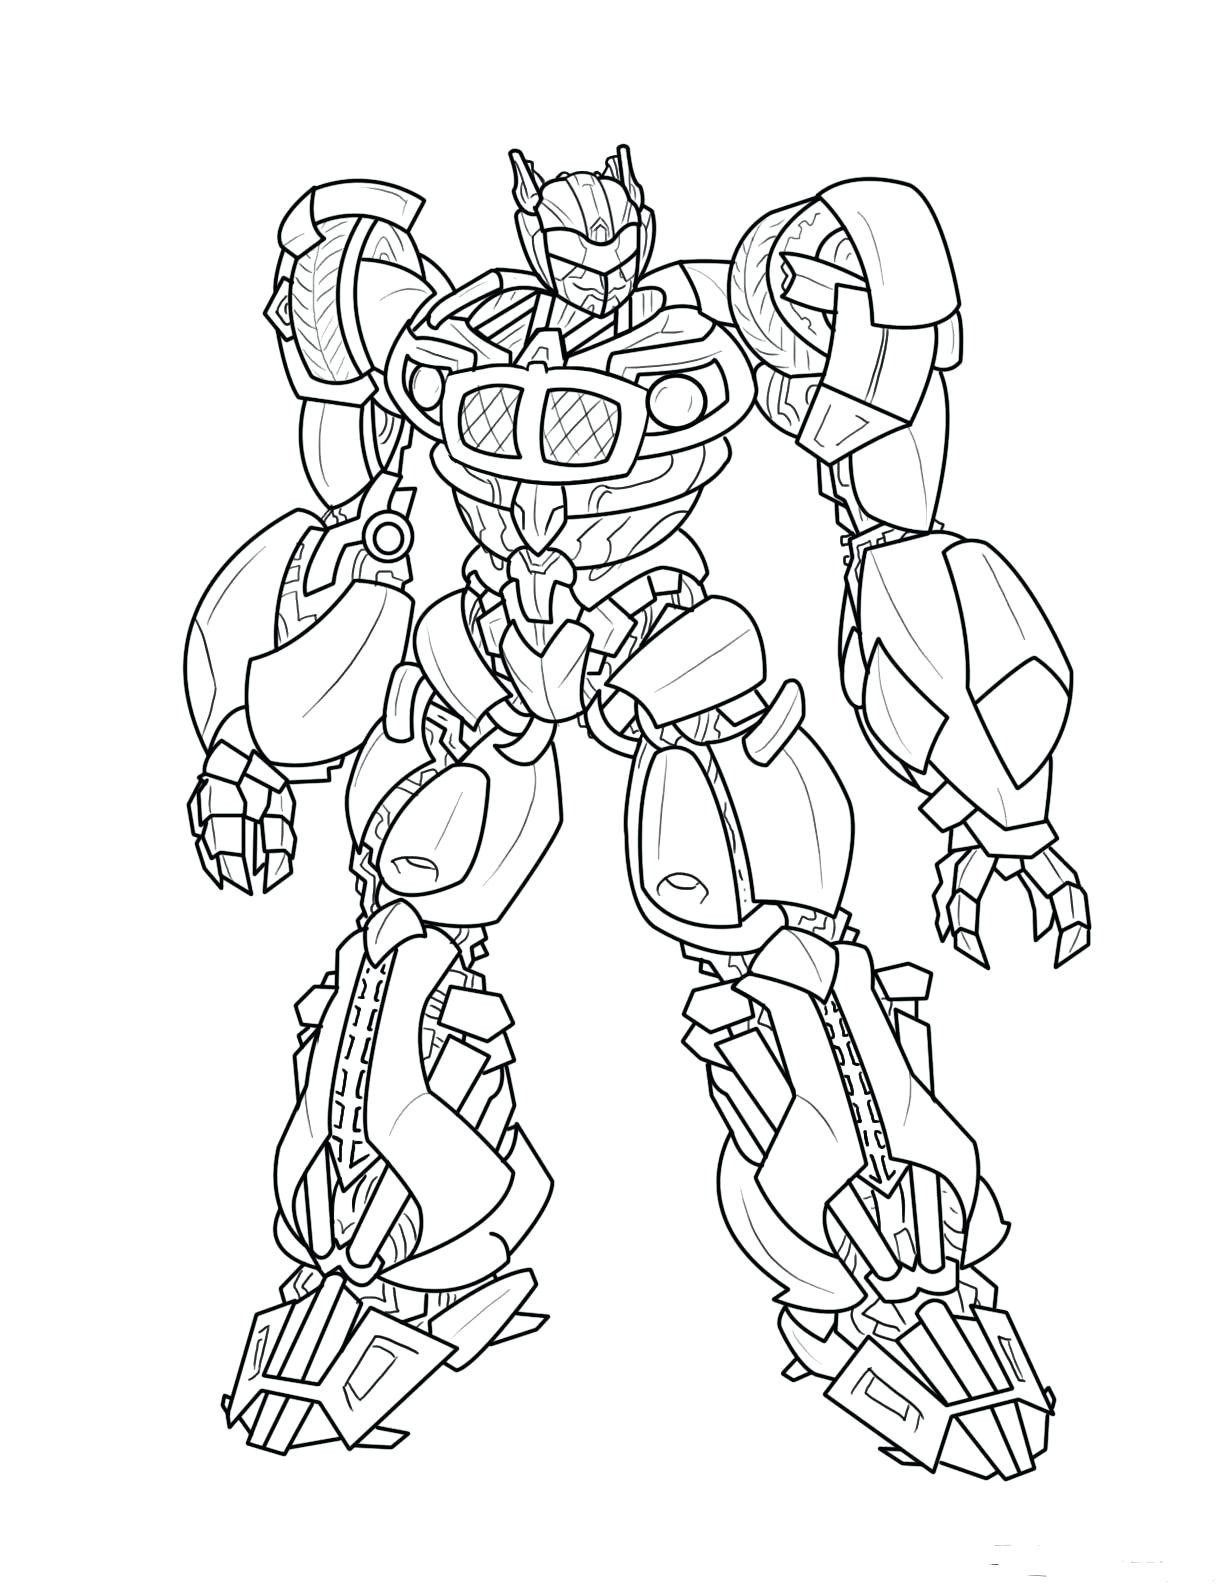 22 Brilliant Image Of Rescue Bots Coloring Pages Davemelillo Com Bee Coloring Pages Transformers Coloring Pages Coloring Pages Inspirational